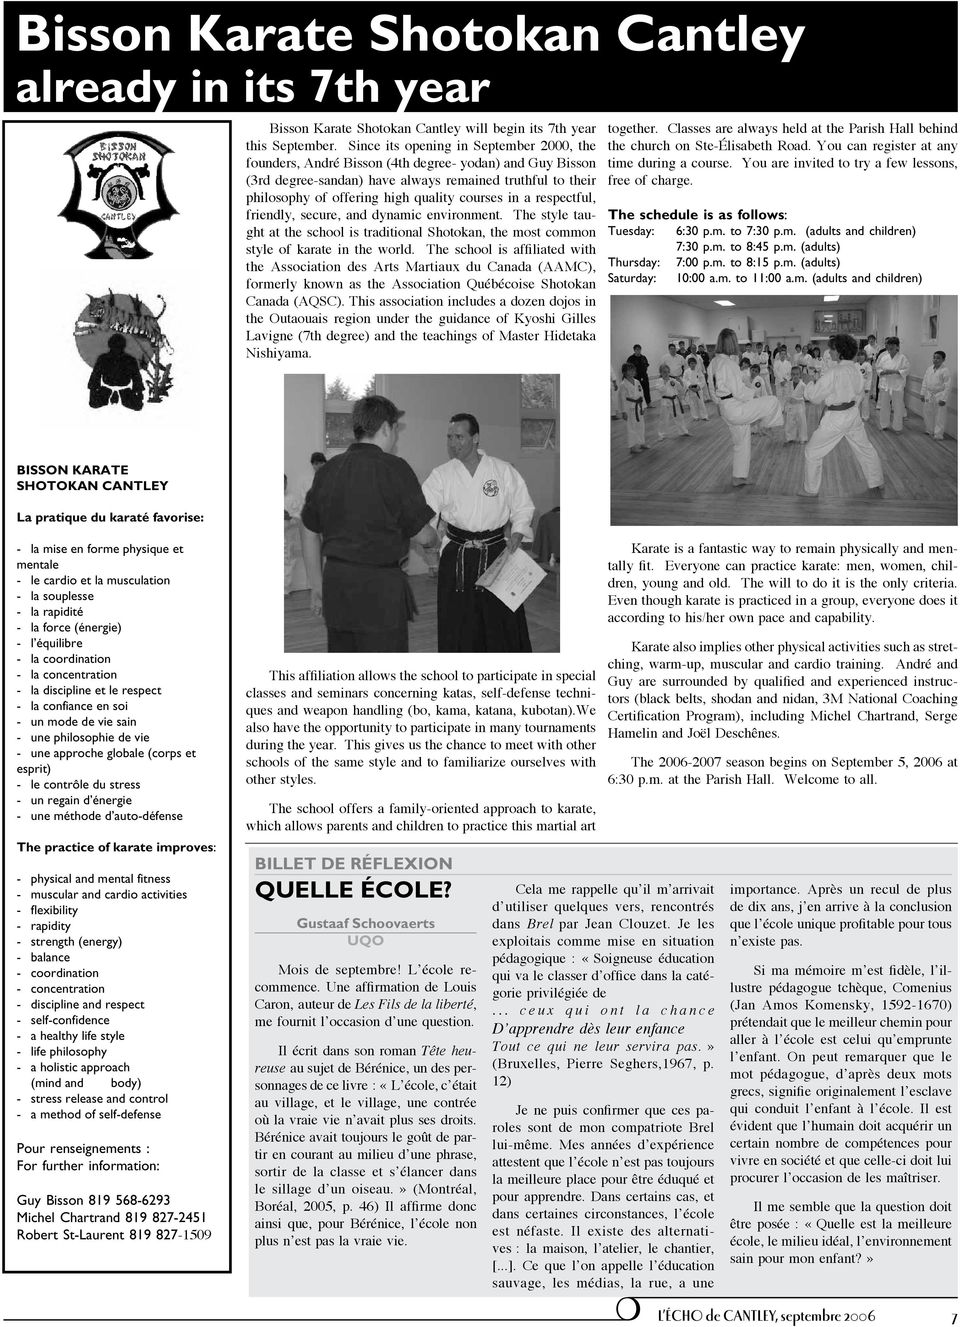 courses in a respectful, friendly, secure, and dynamic environment. The style taught at the school is traditional Shotokan, the most common style of karate in the world.